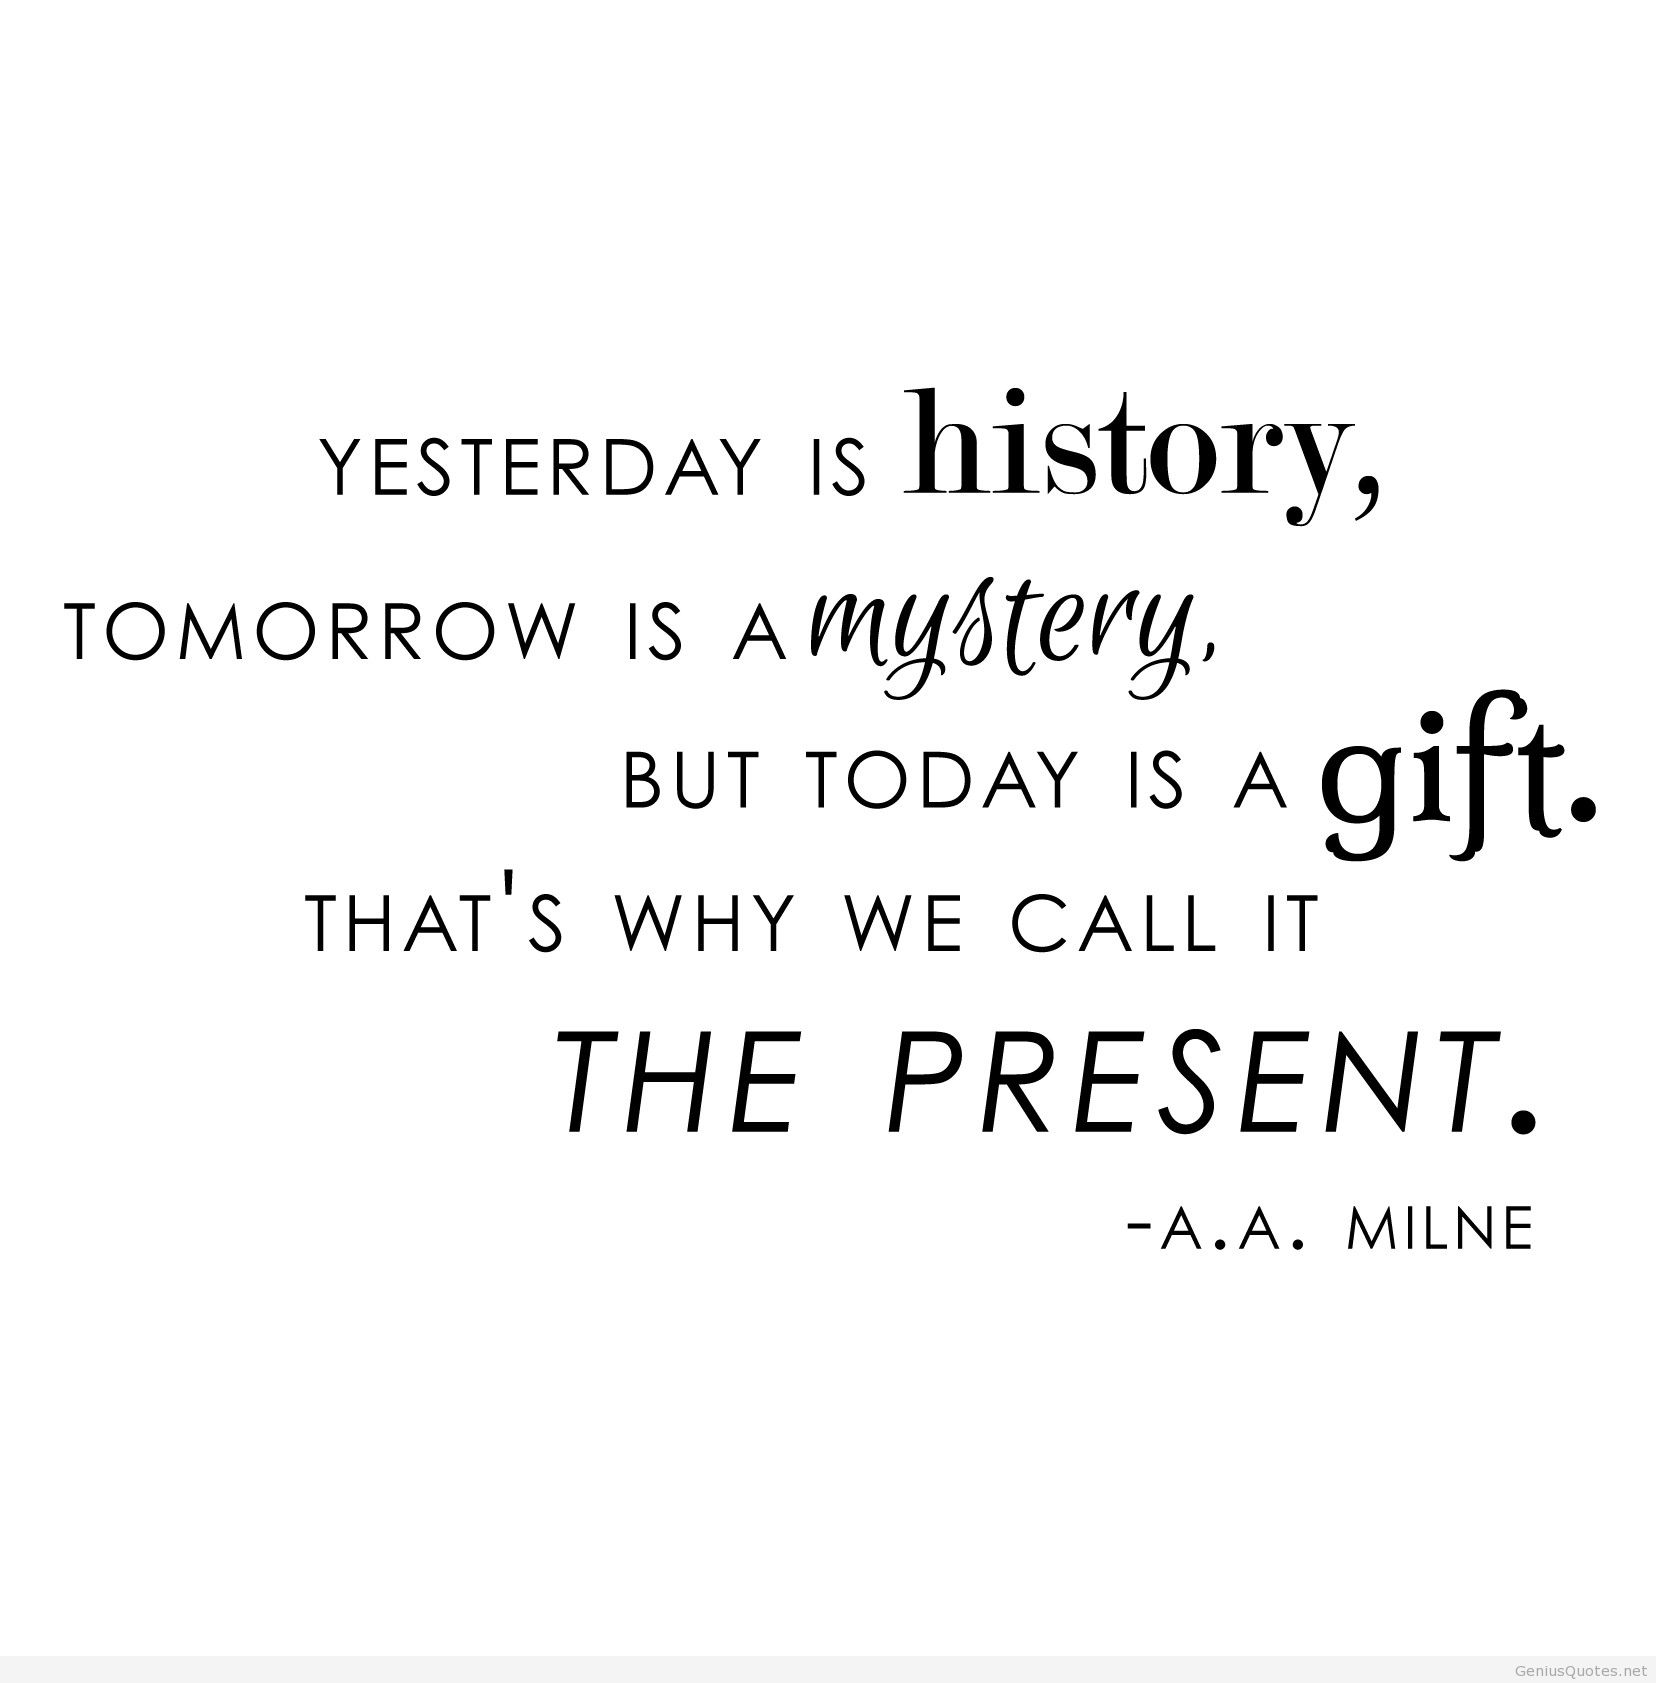 Is today gift is mystery but a a tomorrow Yesterday Tomorrow